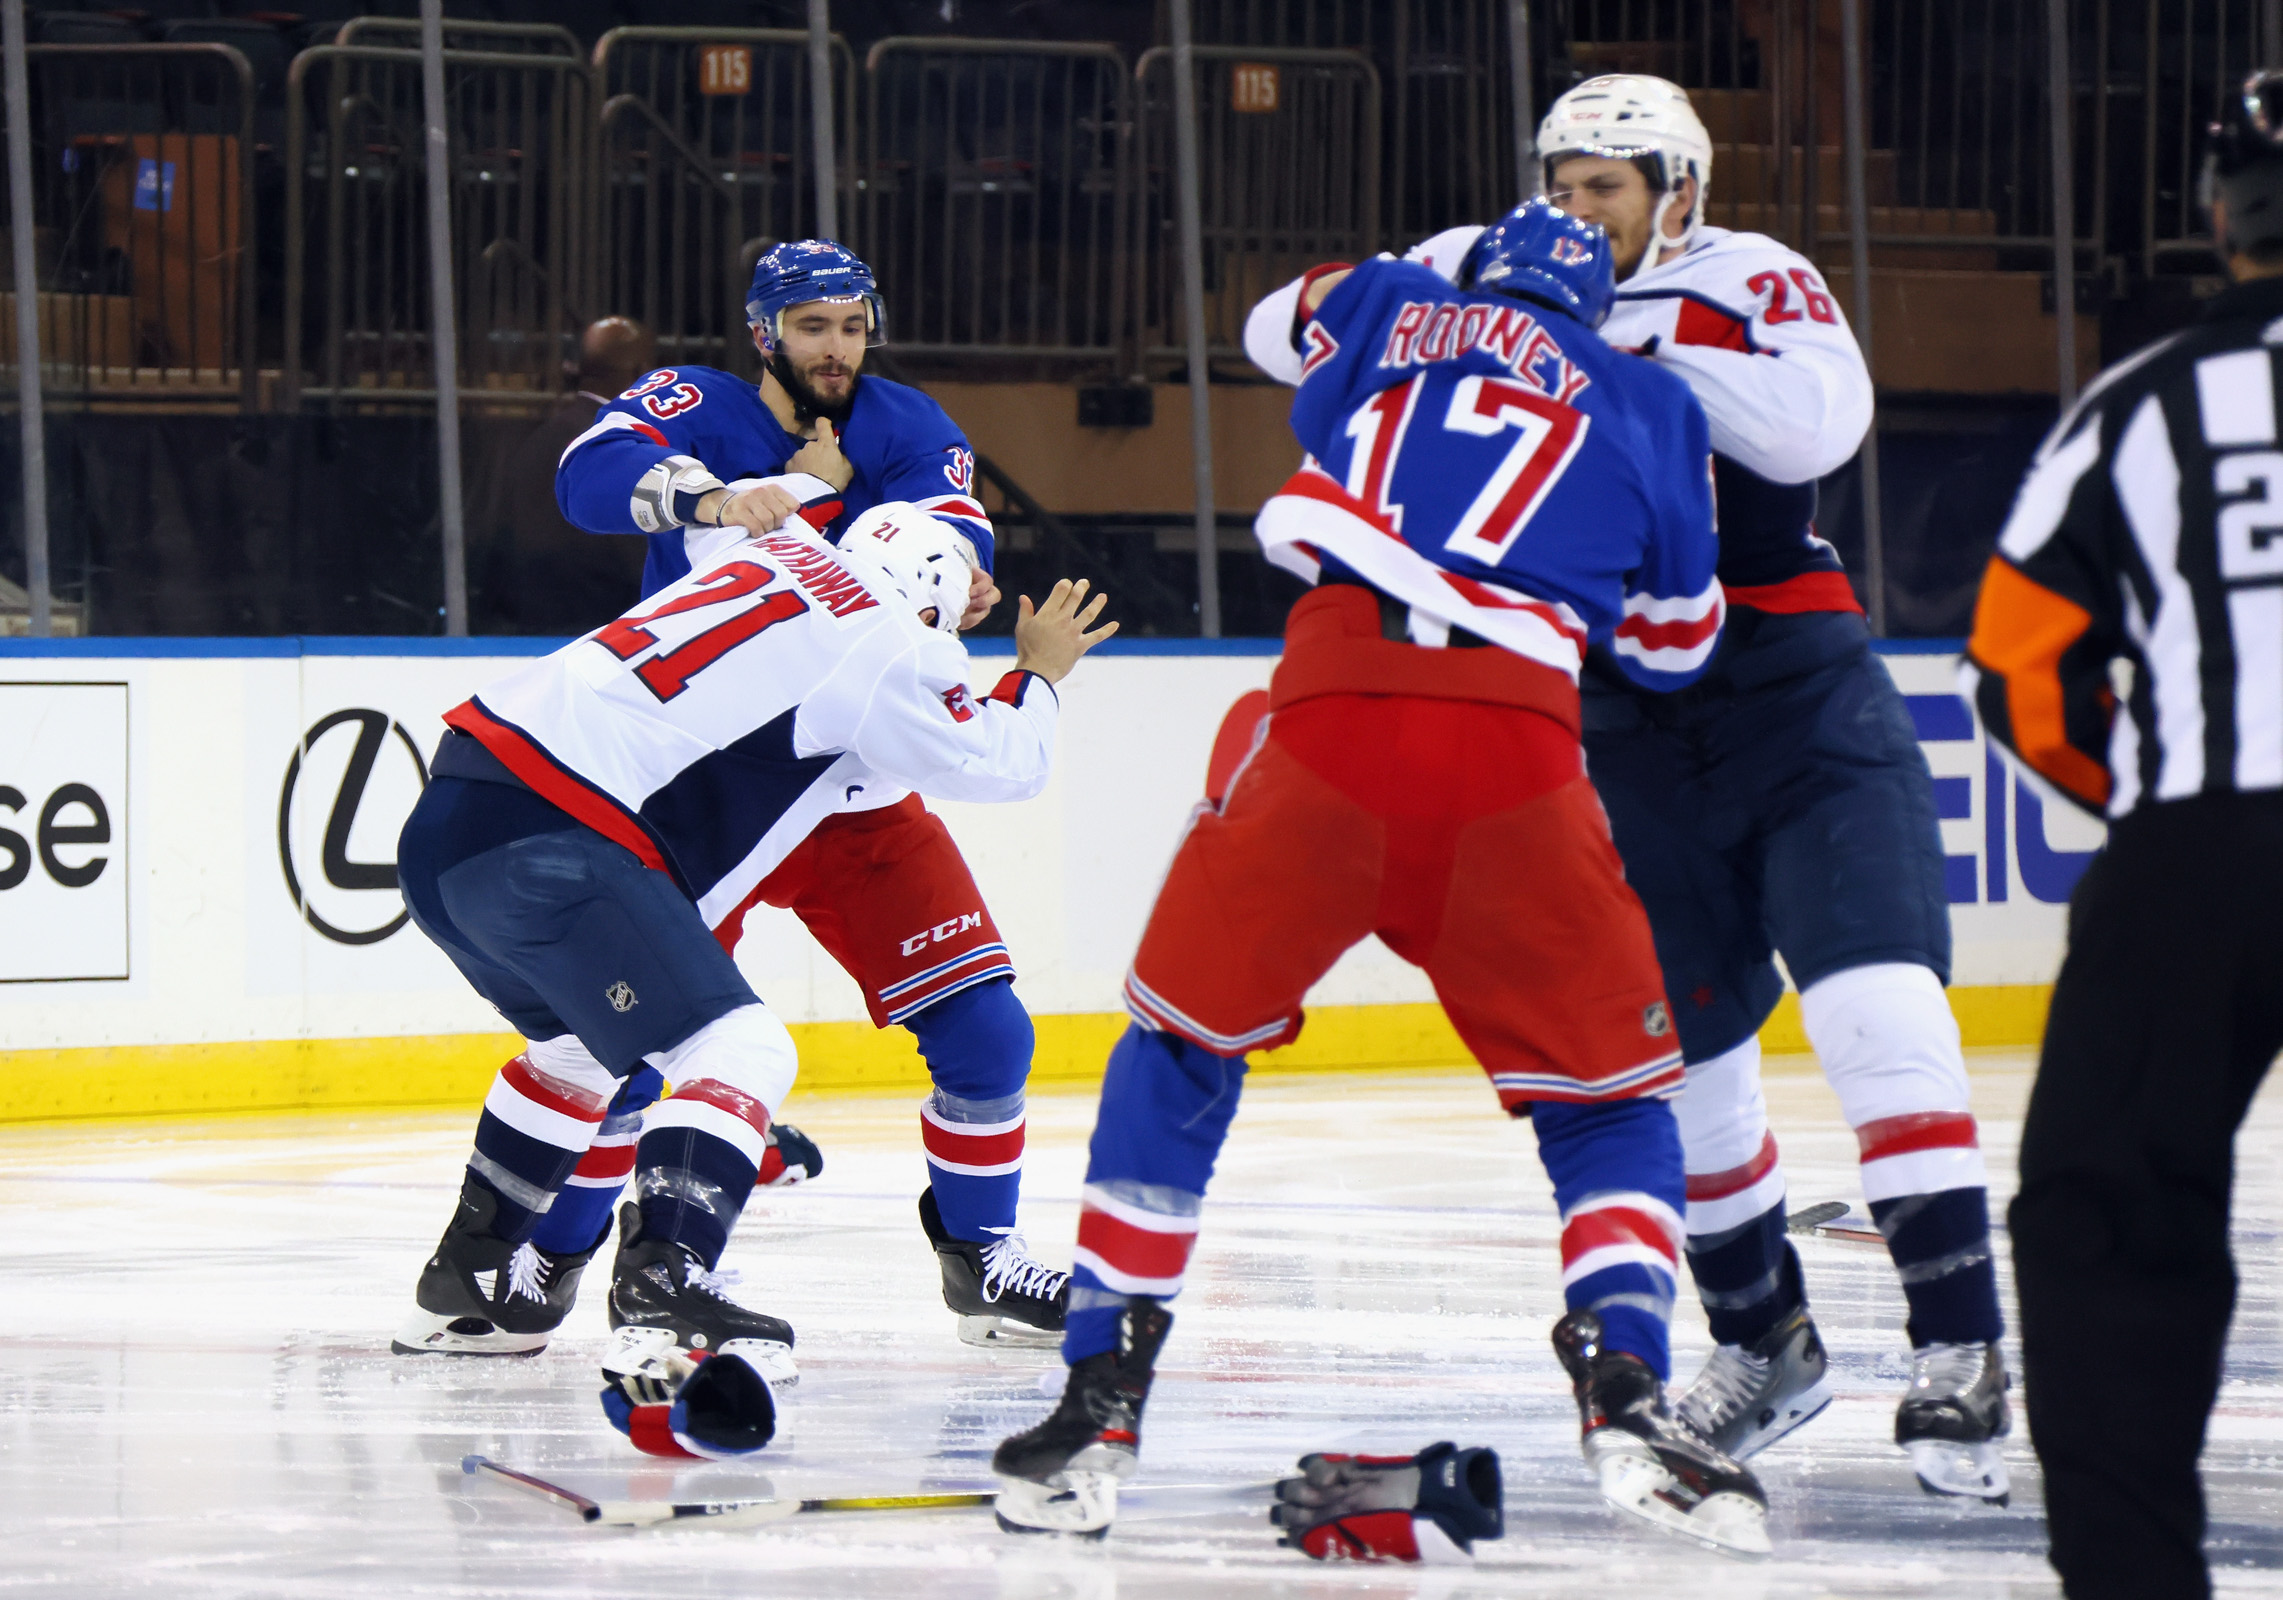 Huge brawl mars hockey game as controversy continues between Rangers and Capitals